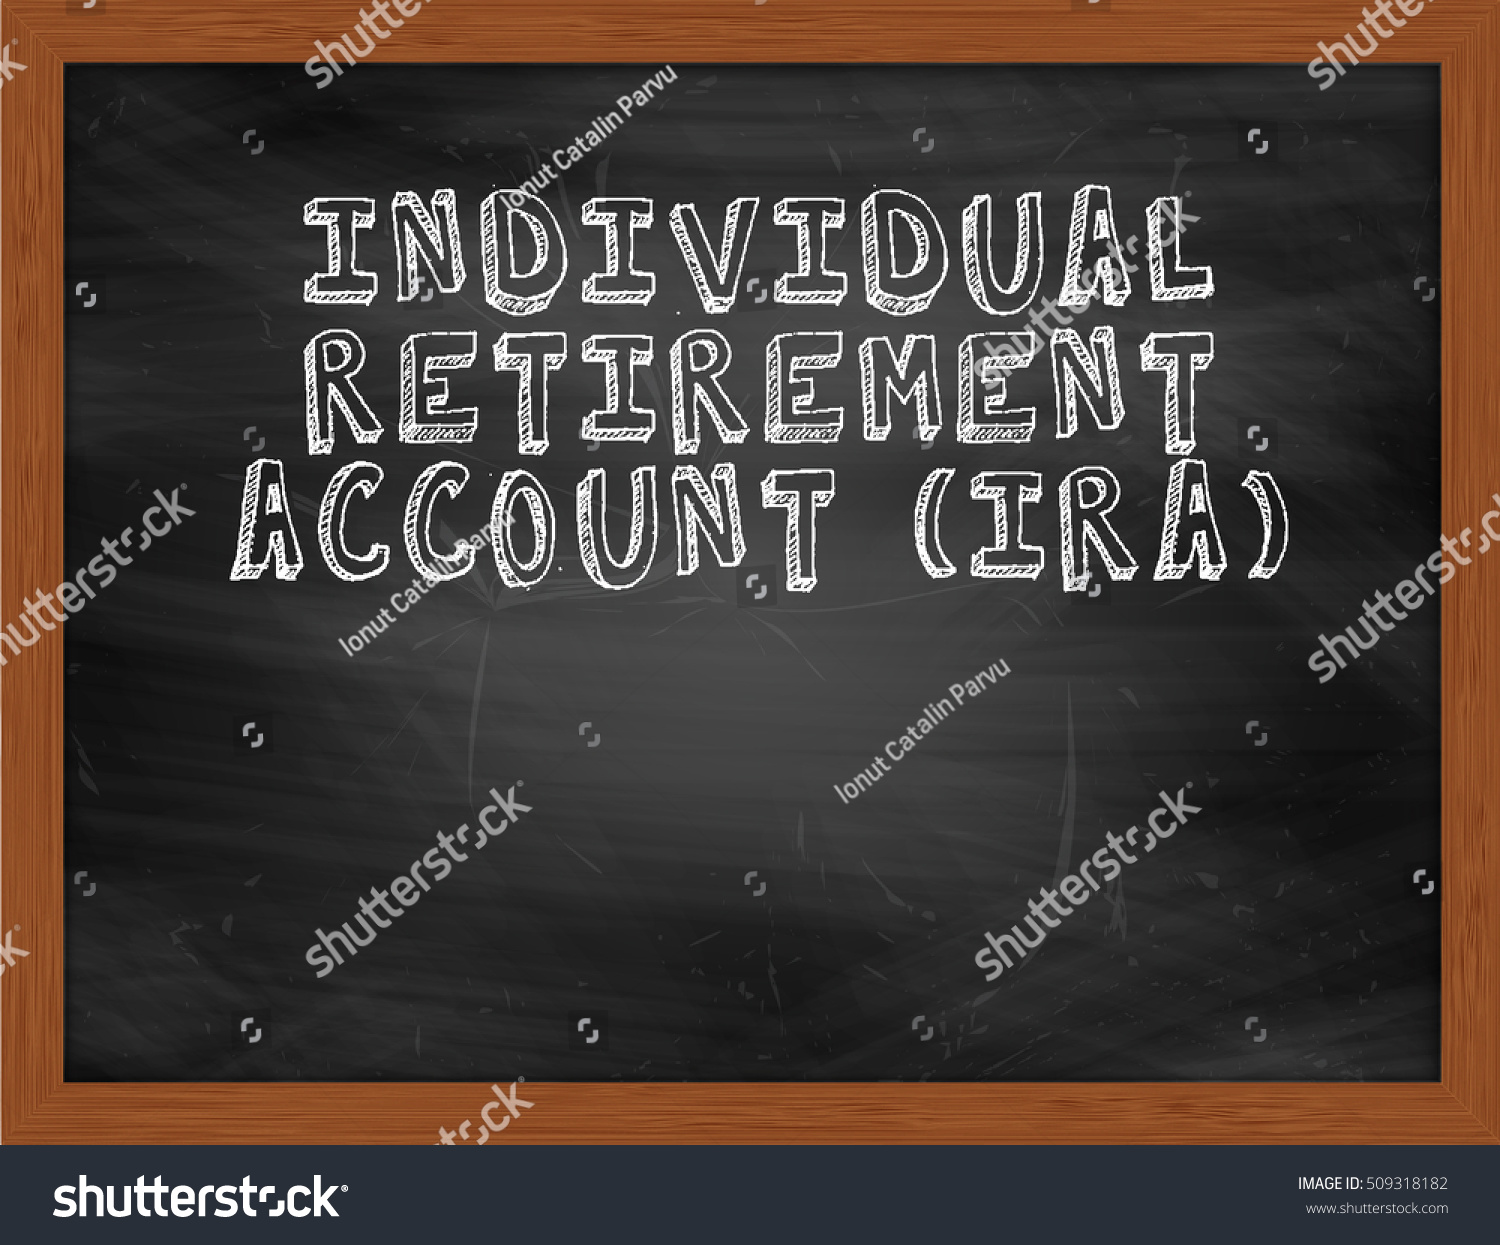 individual retirement account essay Persuasive speech on saving for retirement persuasive speech on saving for retirement dateline: 08/17/98 in virtually every business college, you will have to take some form of speech/communication class.